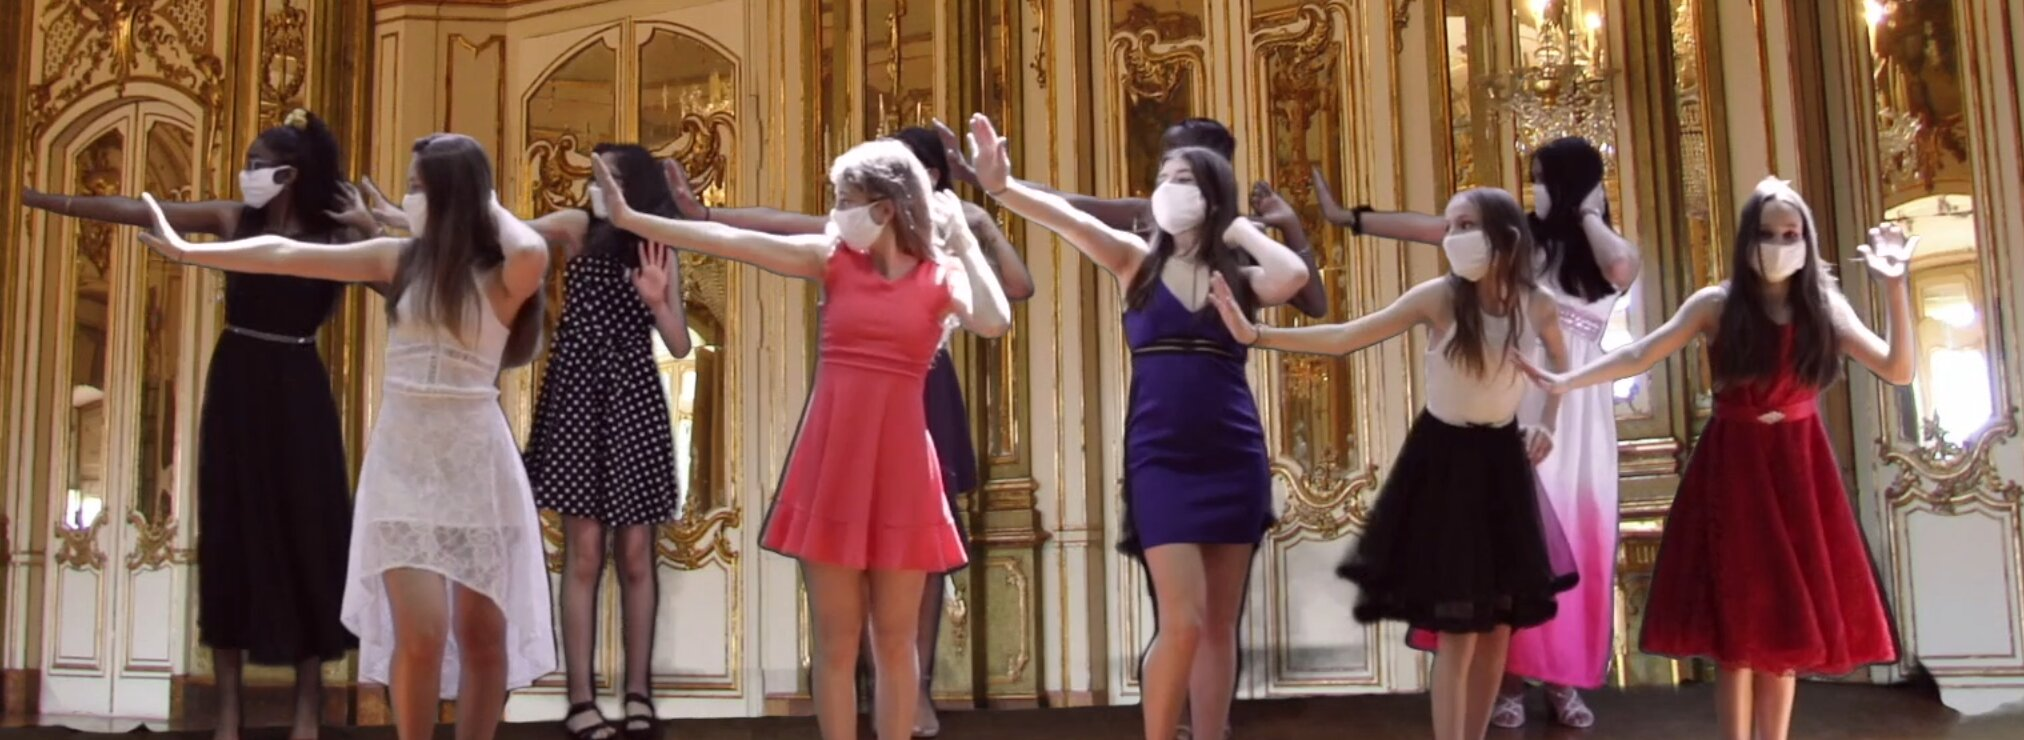 Girls wearing their dress and dancing over a fancy background on a scene from the musical Face a Face